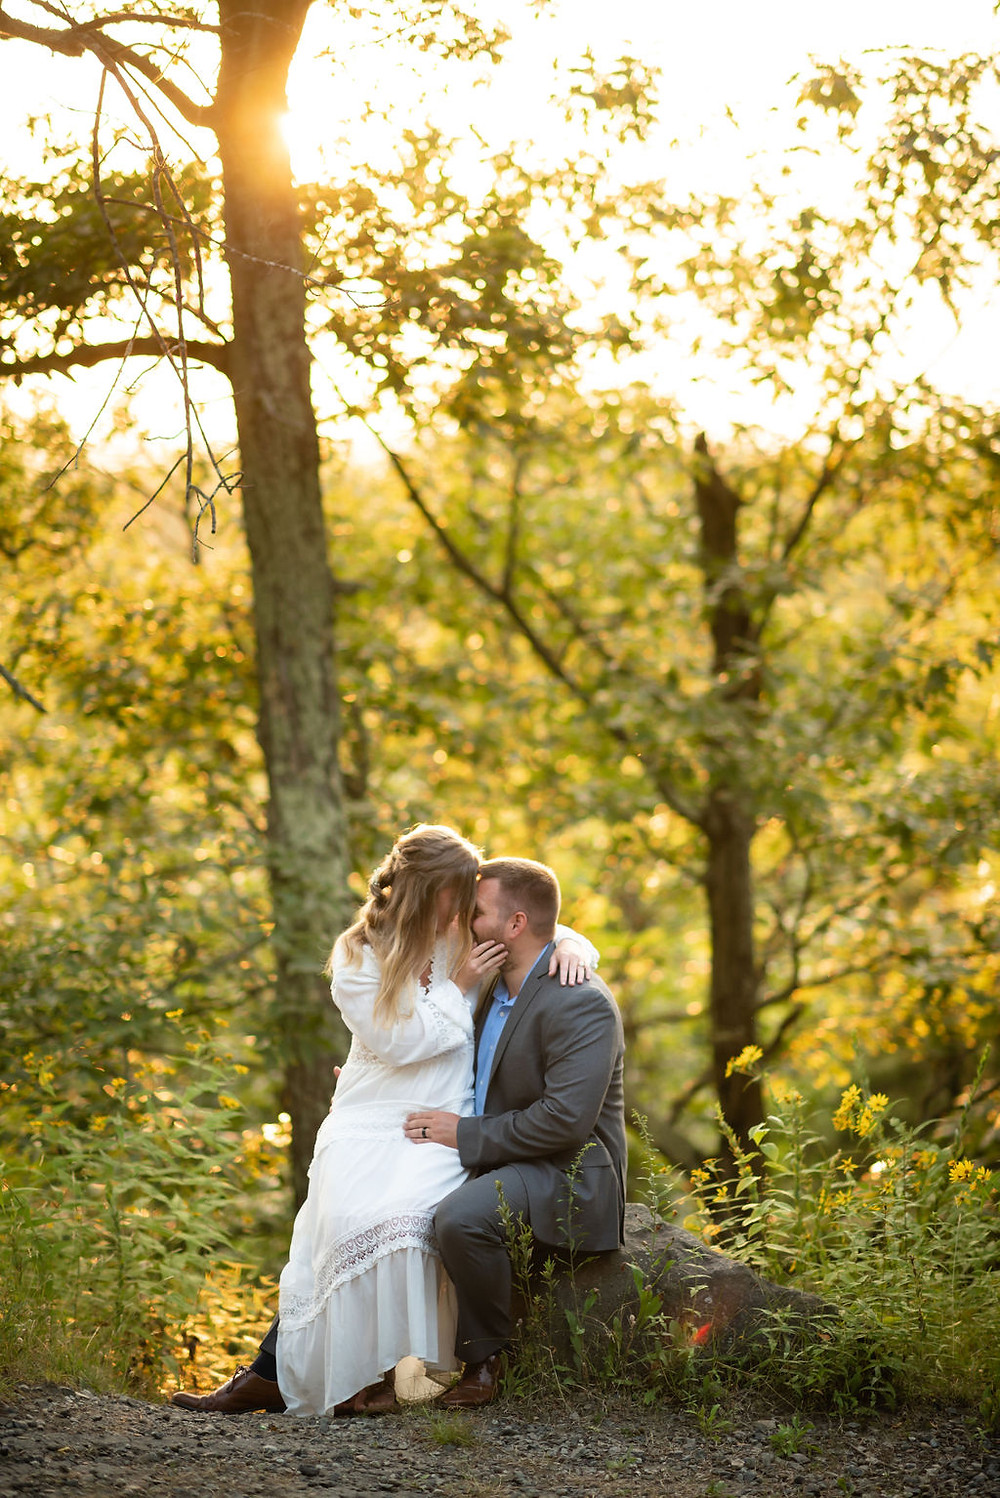 groom sits on rock, bride sits on his leg. they are forehead to forehead and the brides hand is on the groom's face. the sun is setting behind them through the trees with beautiful golden hour light